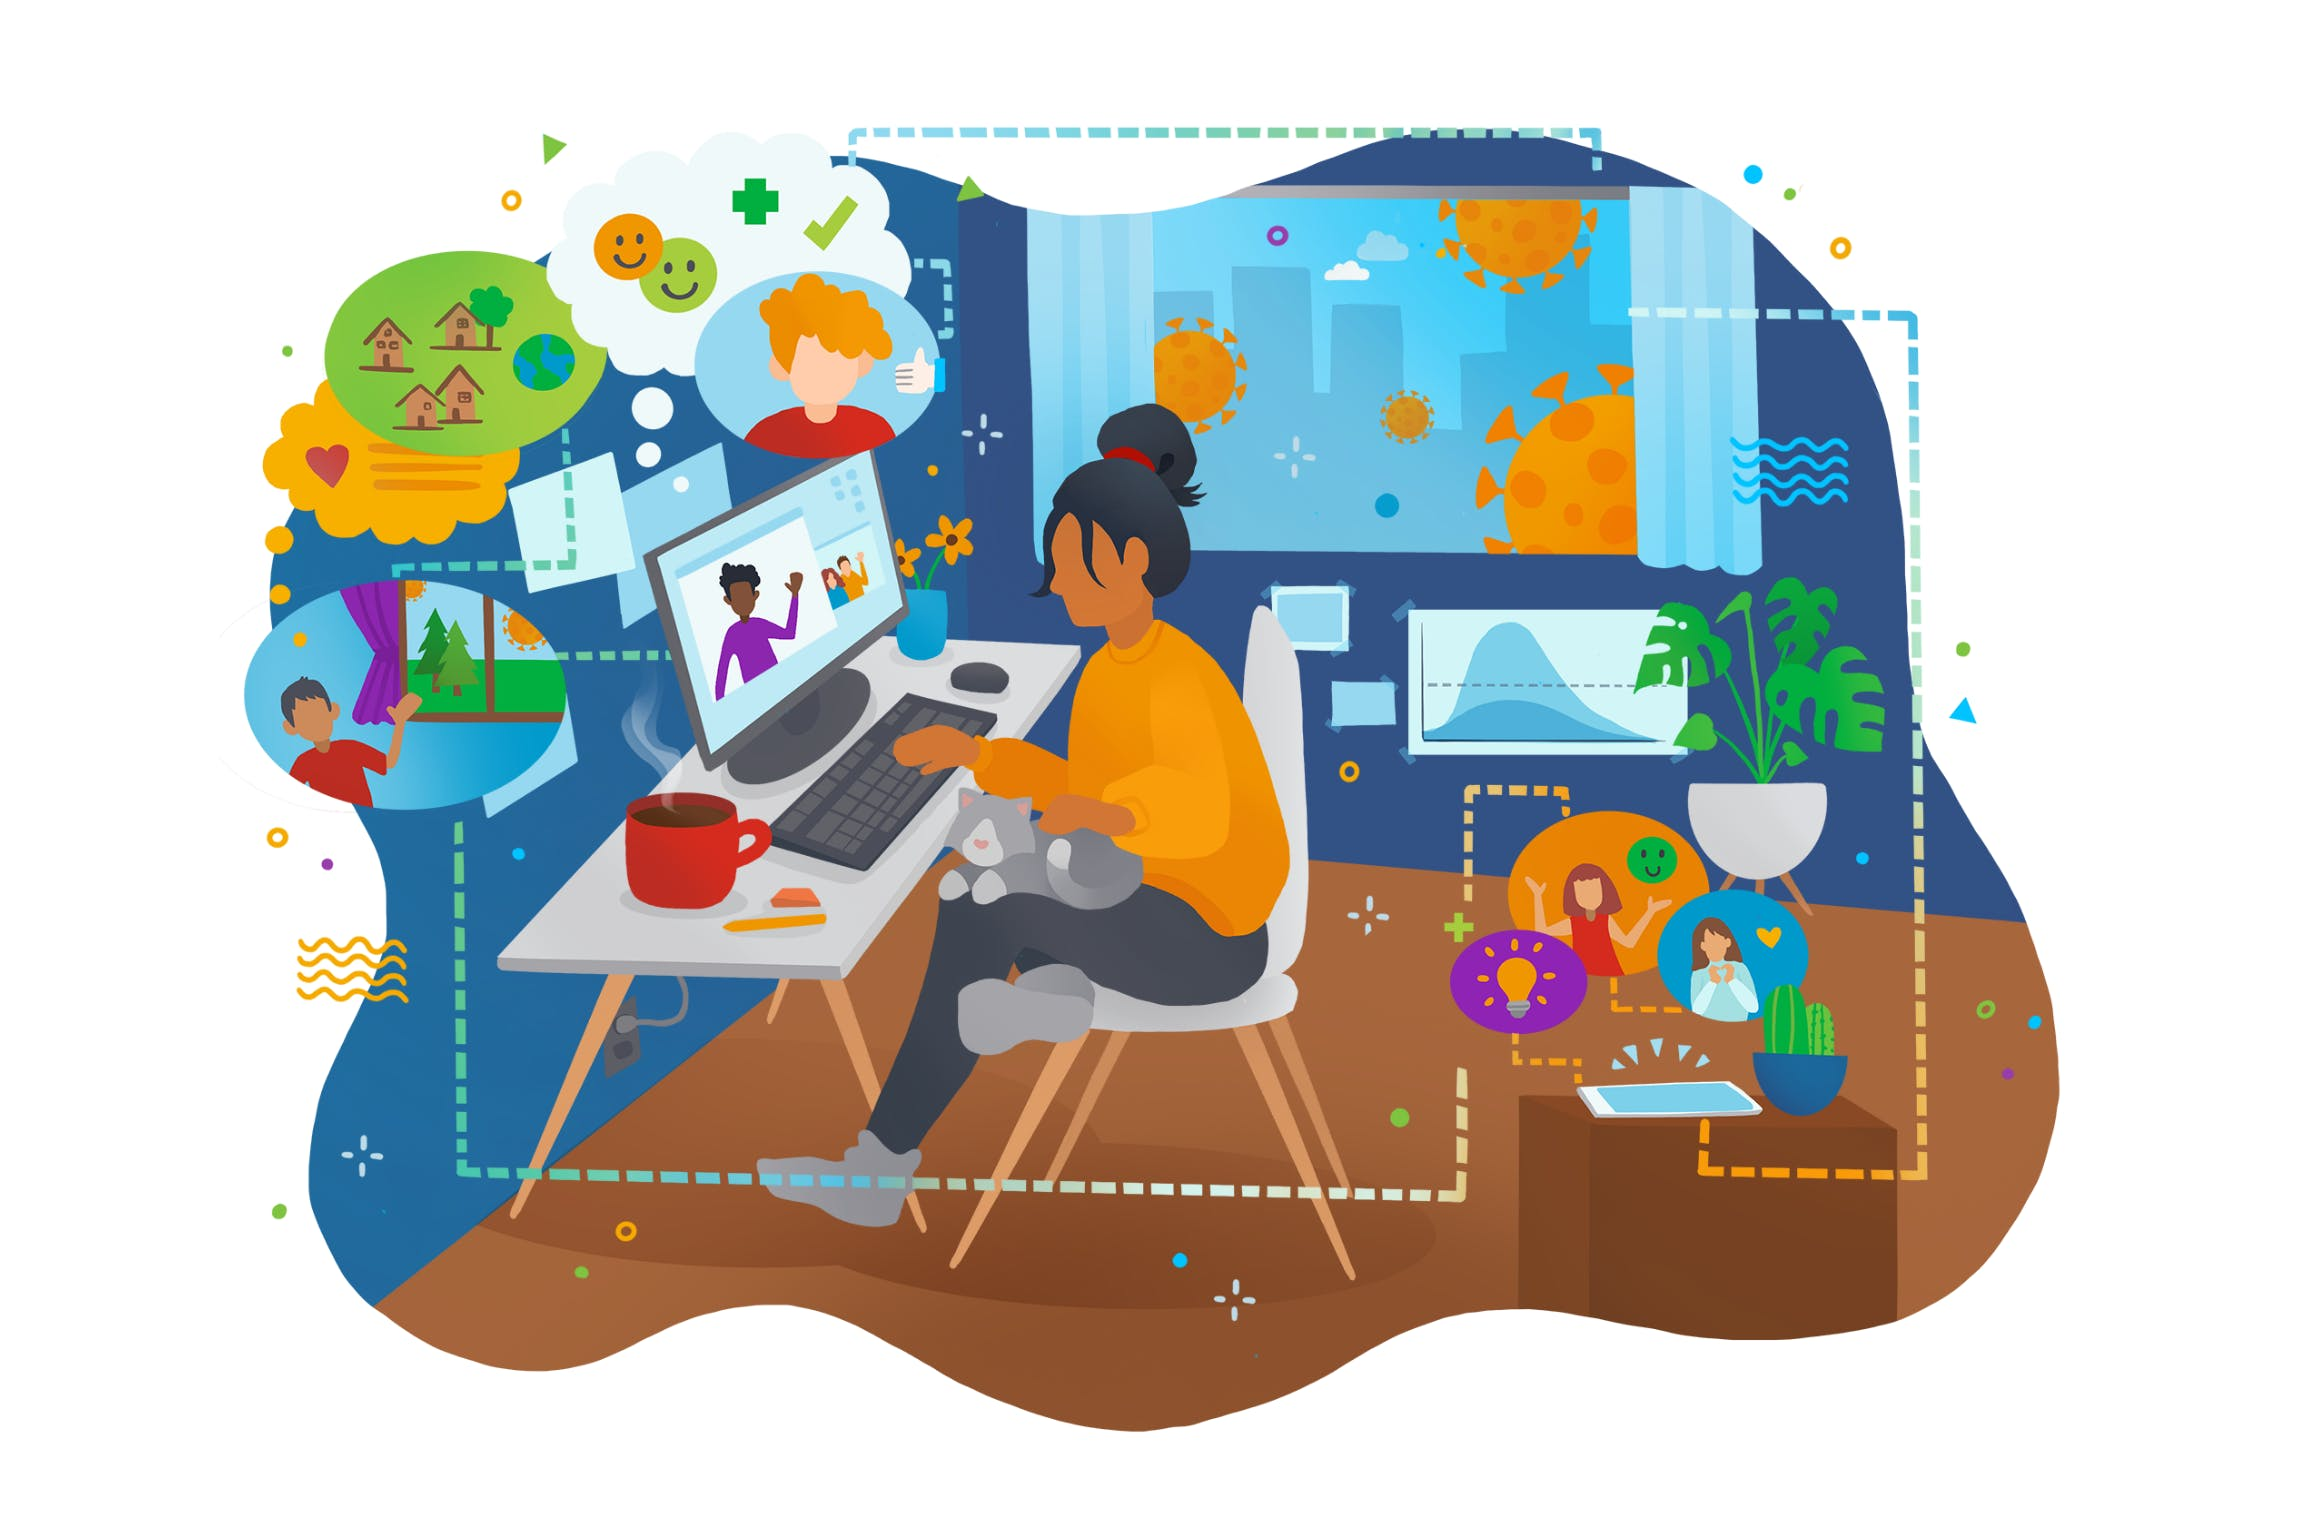 Colourful cartoon illustration of a woman working from home at her desk with a grey cat on her lap.